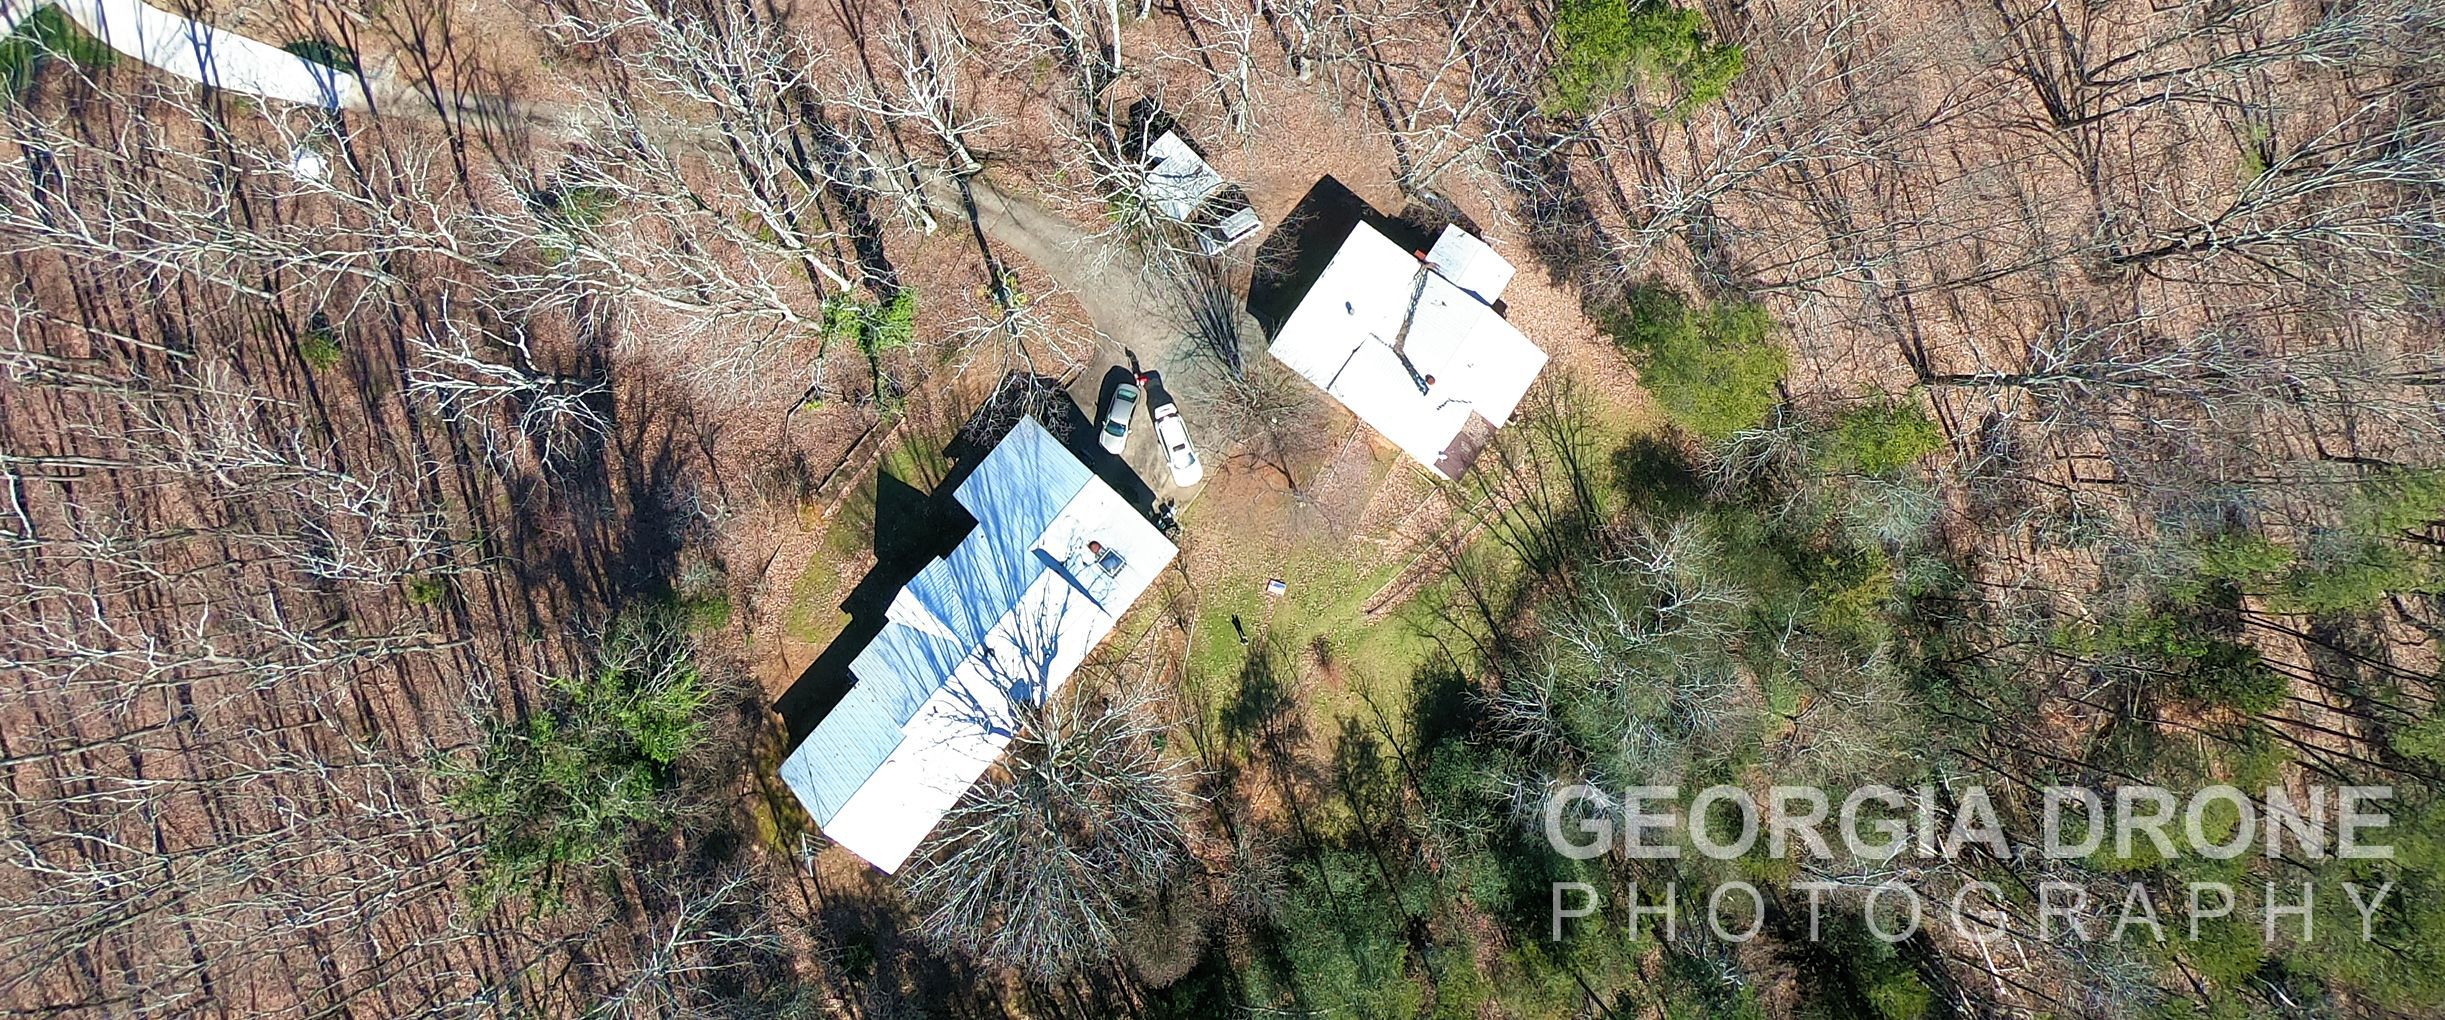 Drone photo of Cumming GA residential real estate